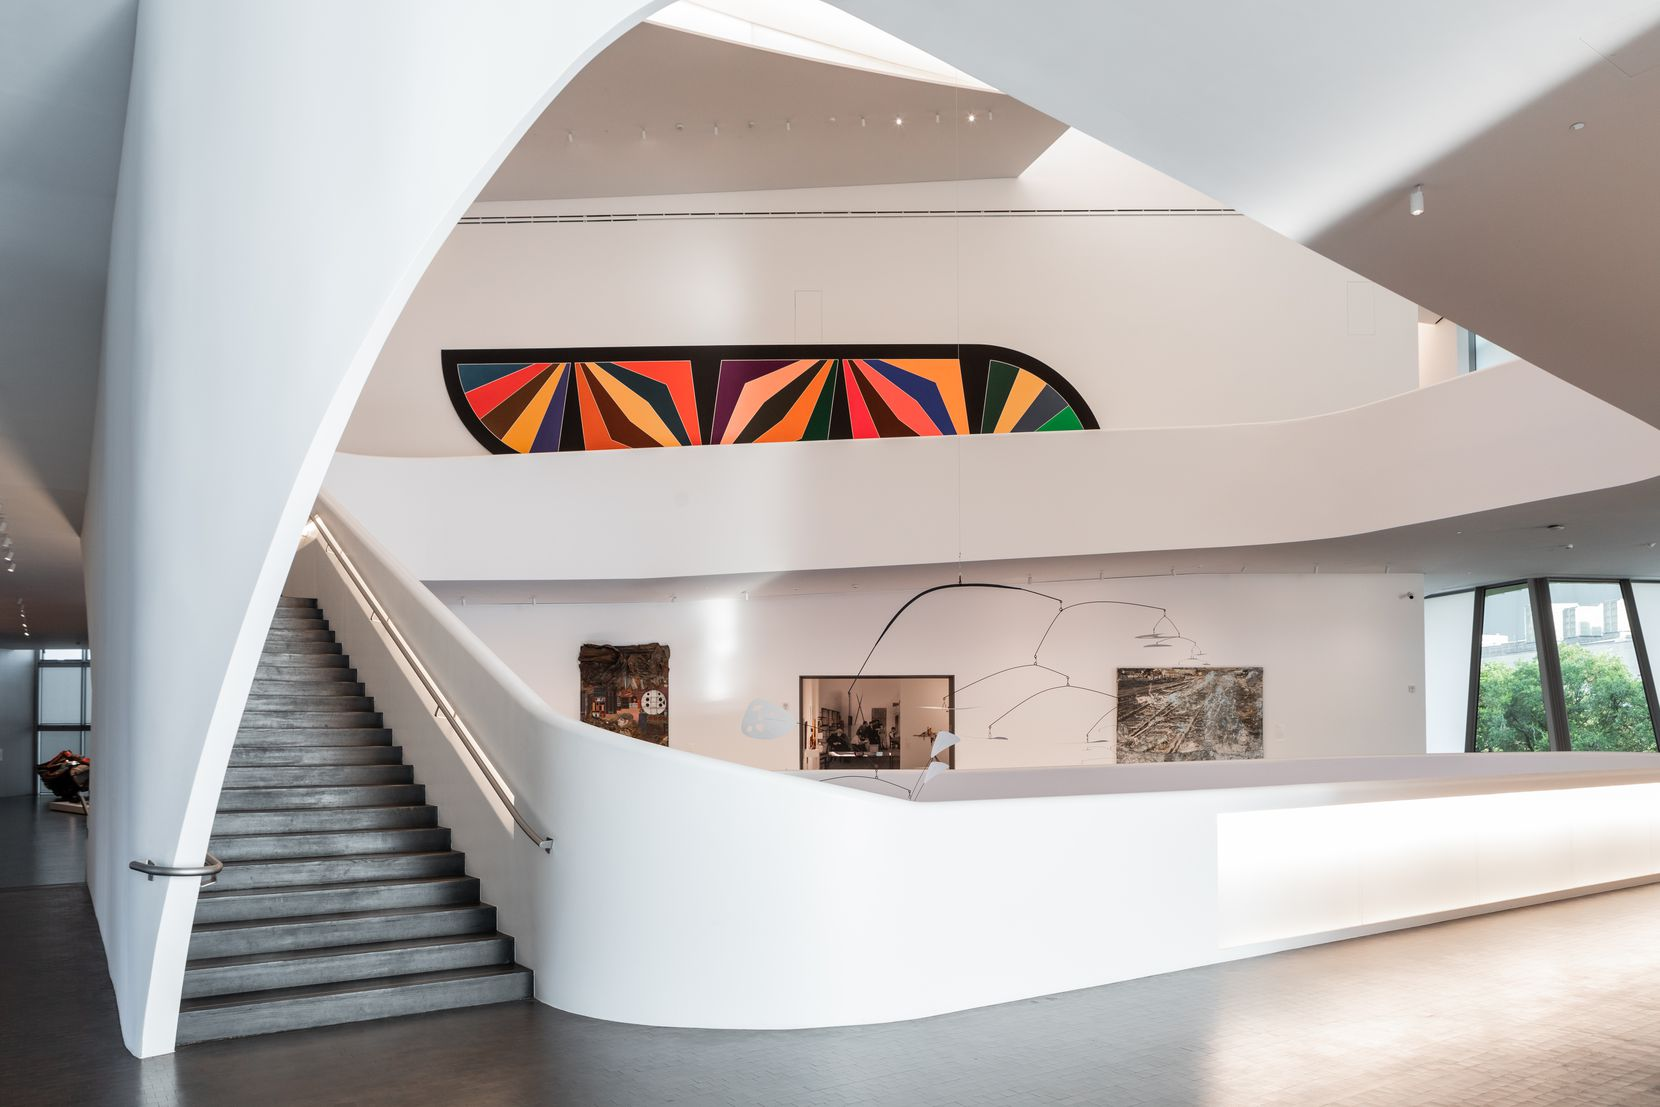 The new building accommodates the museum's growing collection of modern and contemporary art with space to show some 1,500 works.